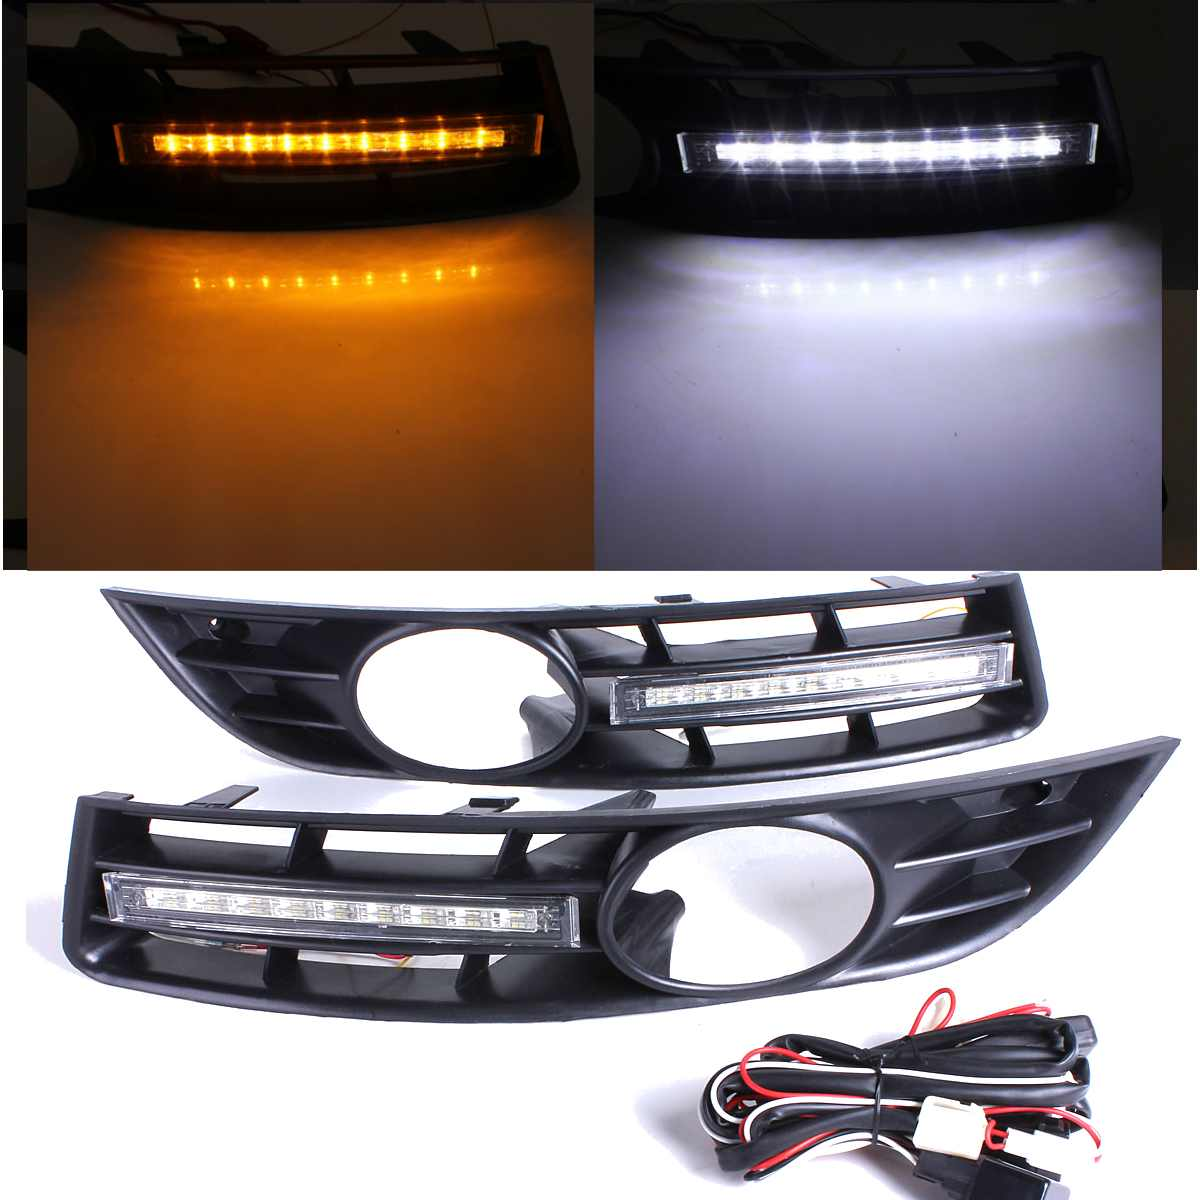 Car LED Light LED DRL Daytime Running Light with grill surround For VW Passat B6 2006 2007 2008 2009 2010 2011 WaterproofCar LED Light LED DRL Daytime Running Light with grill surround For VW Passat B6 2006 2007 2008 2009 2010 2011 Waterproof